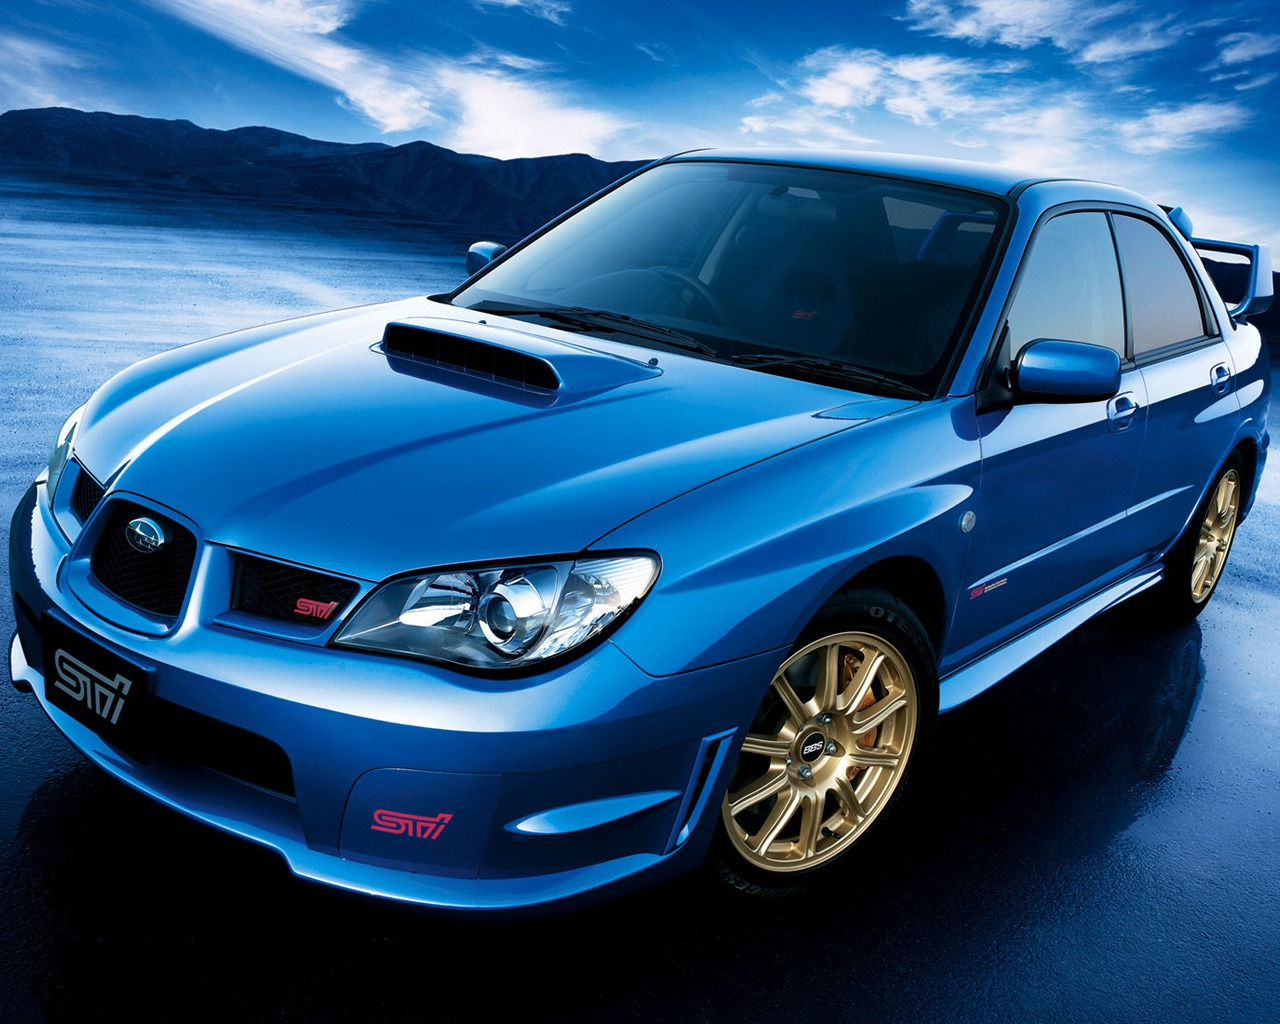 subaru impreza wrx sti wallpaper subaru cars wallpapers in. Black Bedroom Furniture Sets. Home Design Ideas